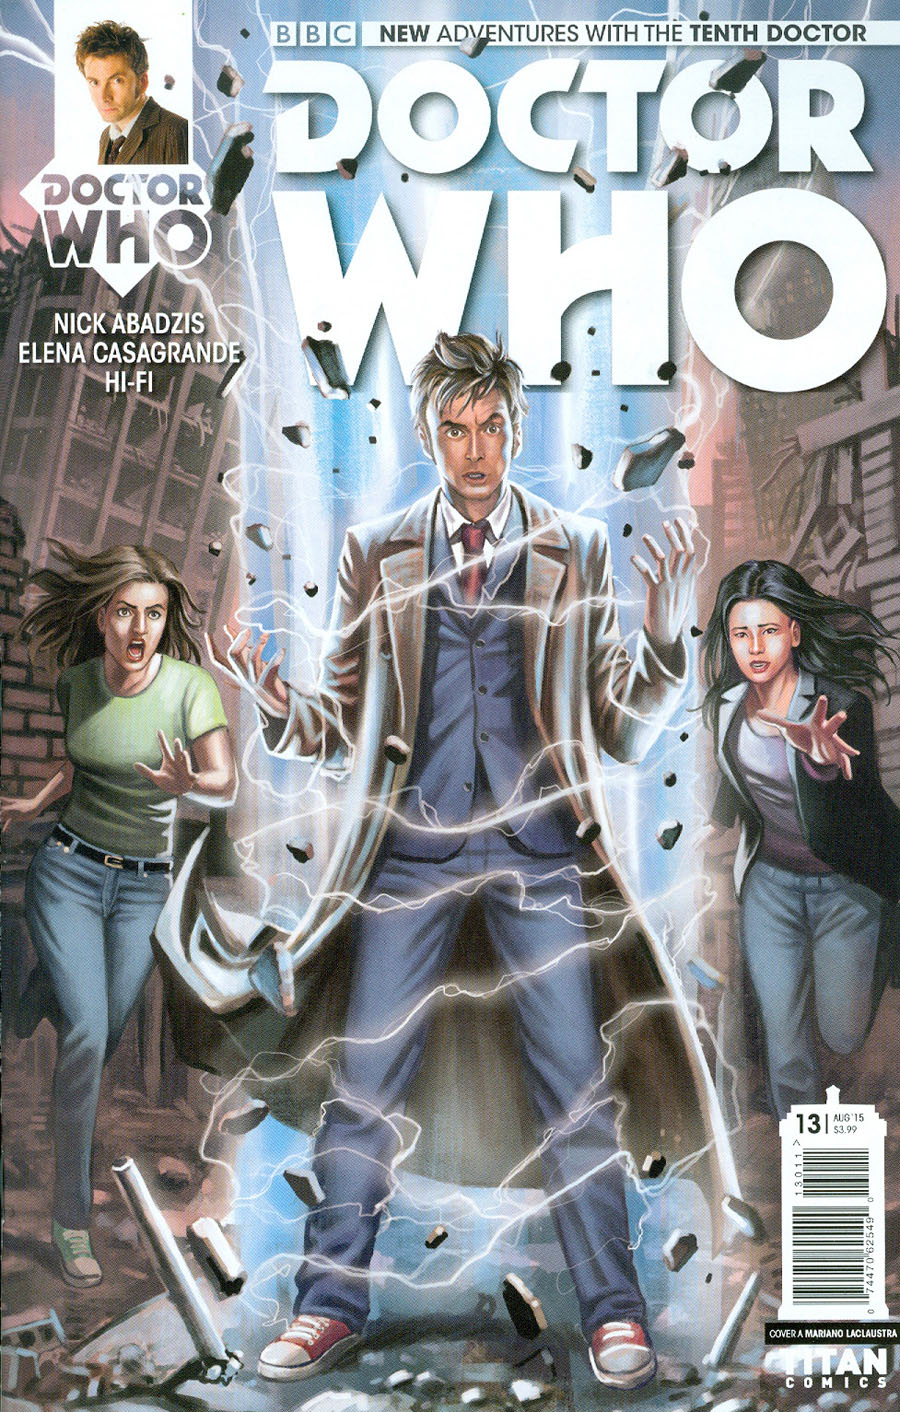 Doctor Who 10th Doctor #13 Cover A Regular Mariano Laclaustra Cover